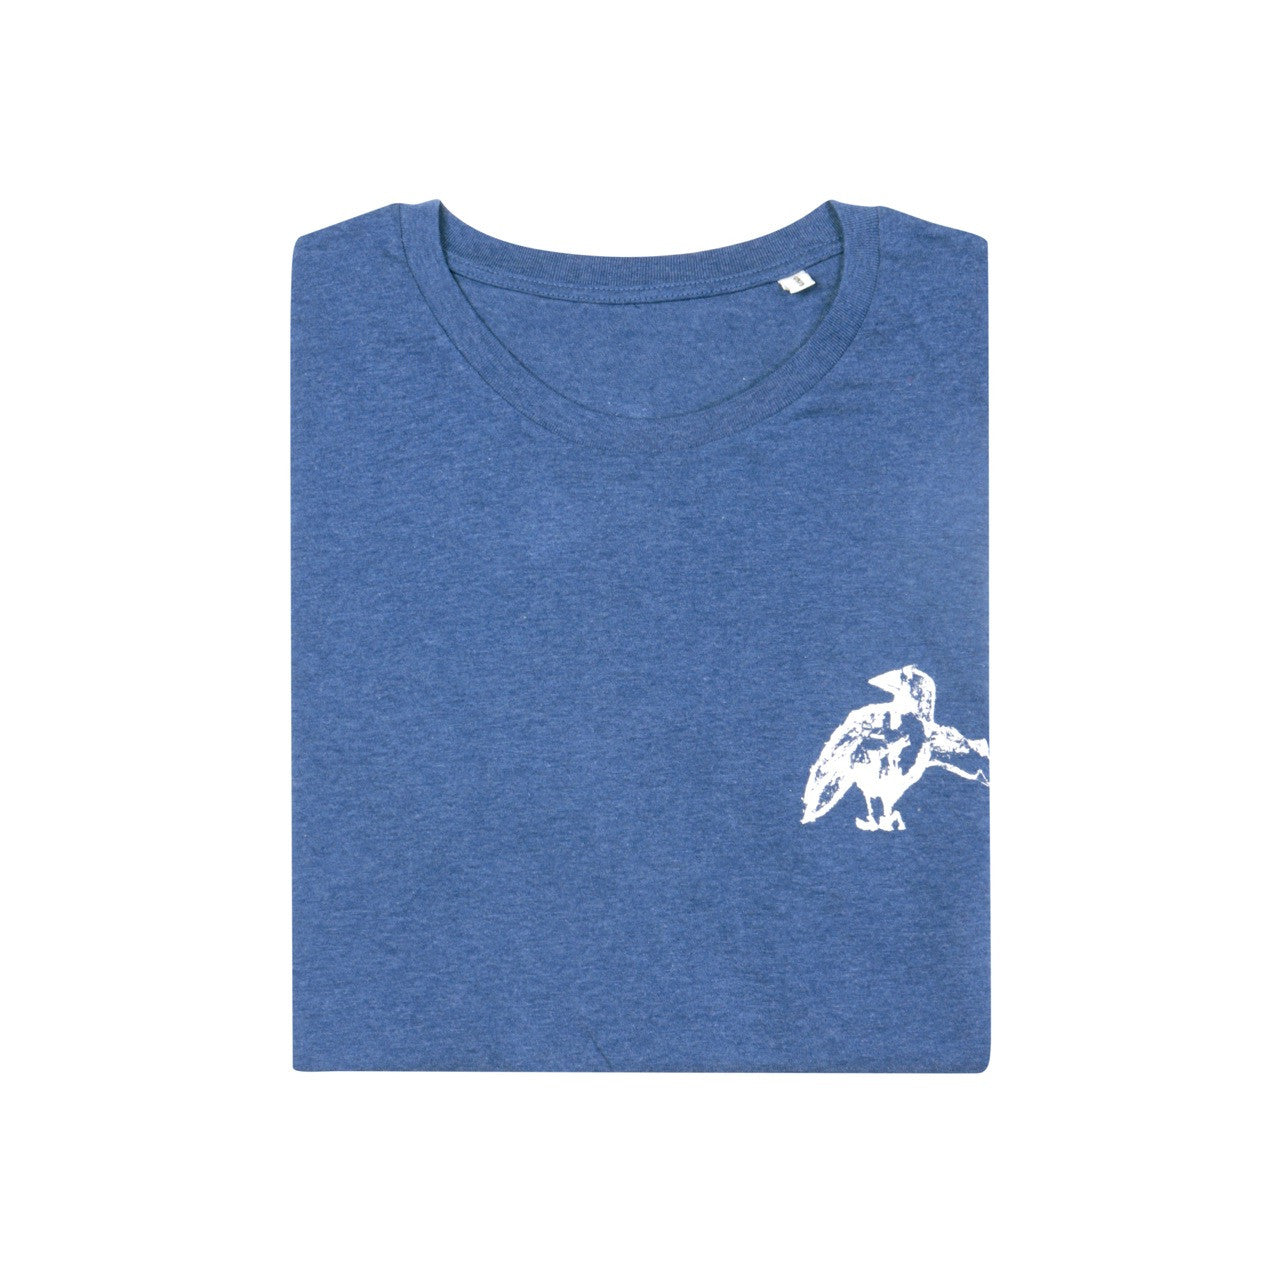 Zin's Encouragement Organic Tee // Deep Blue